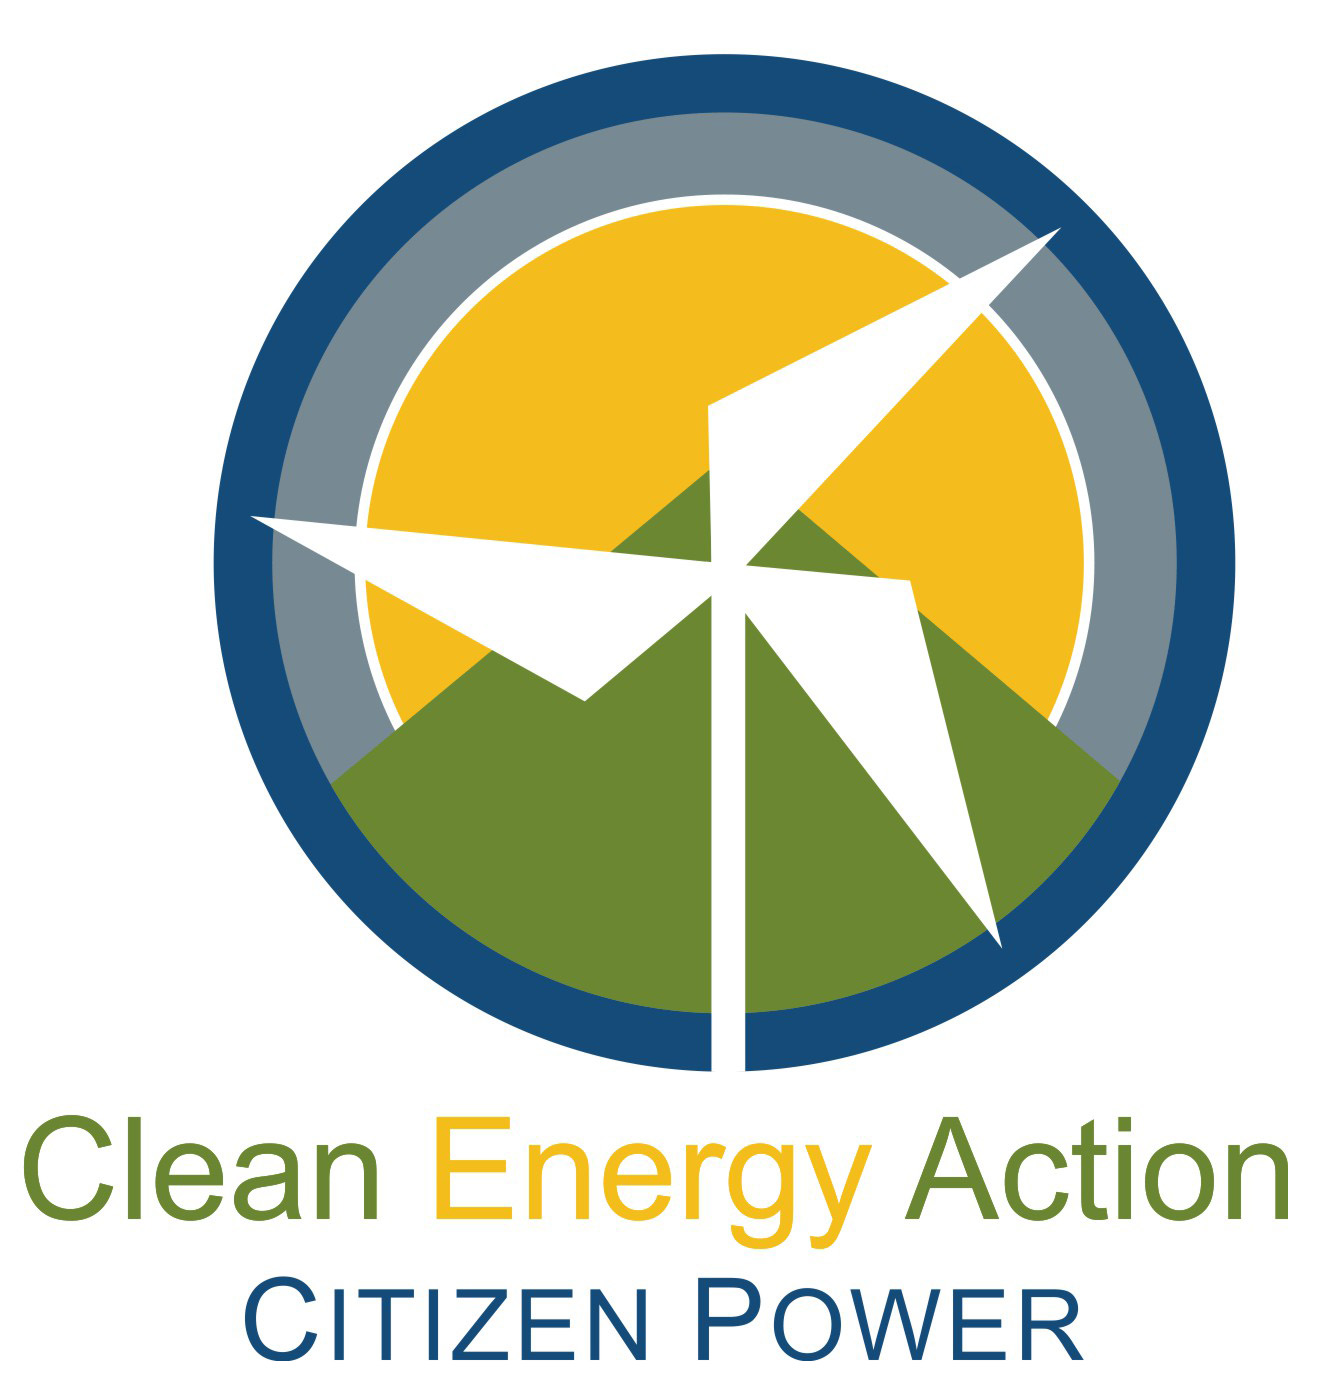 Clean Energy Action